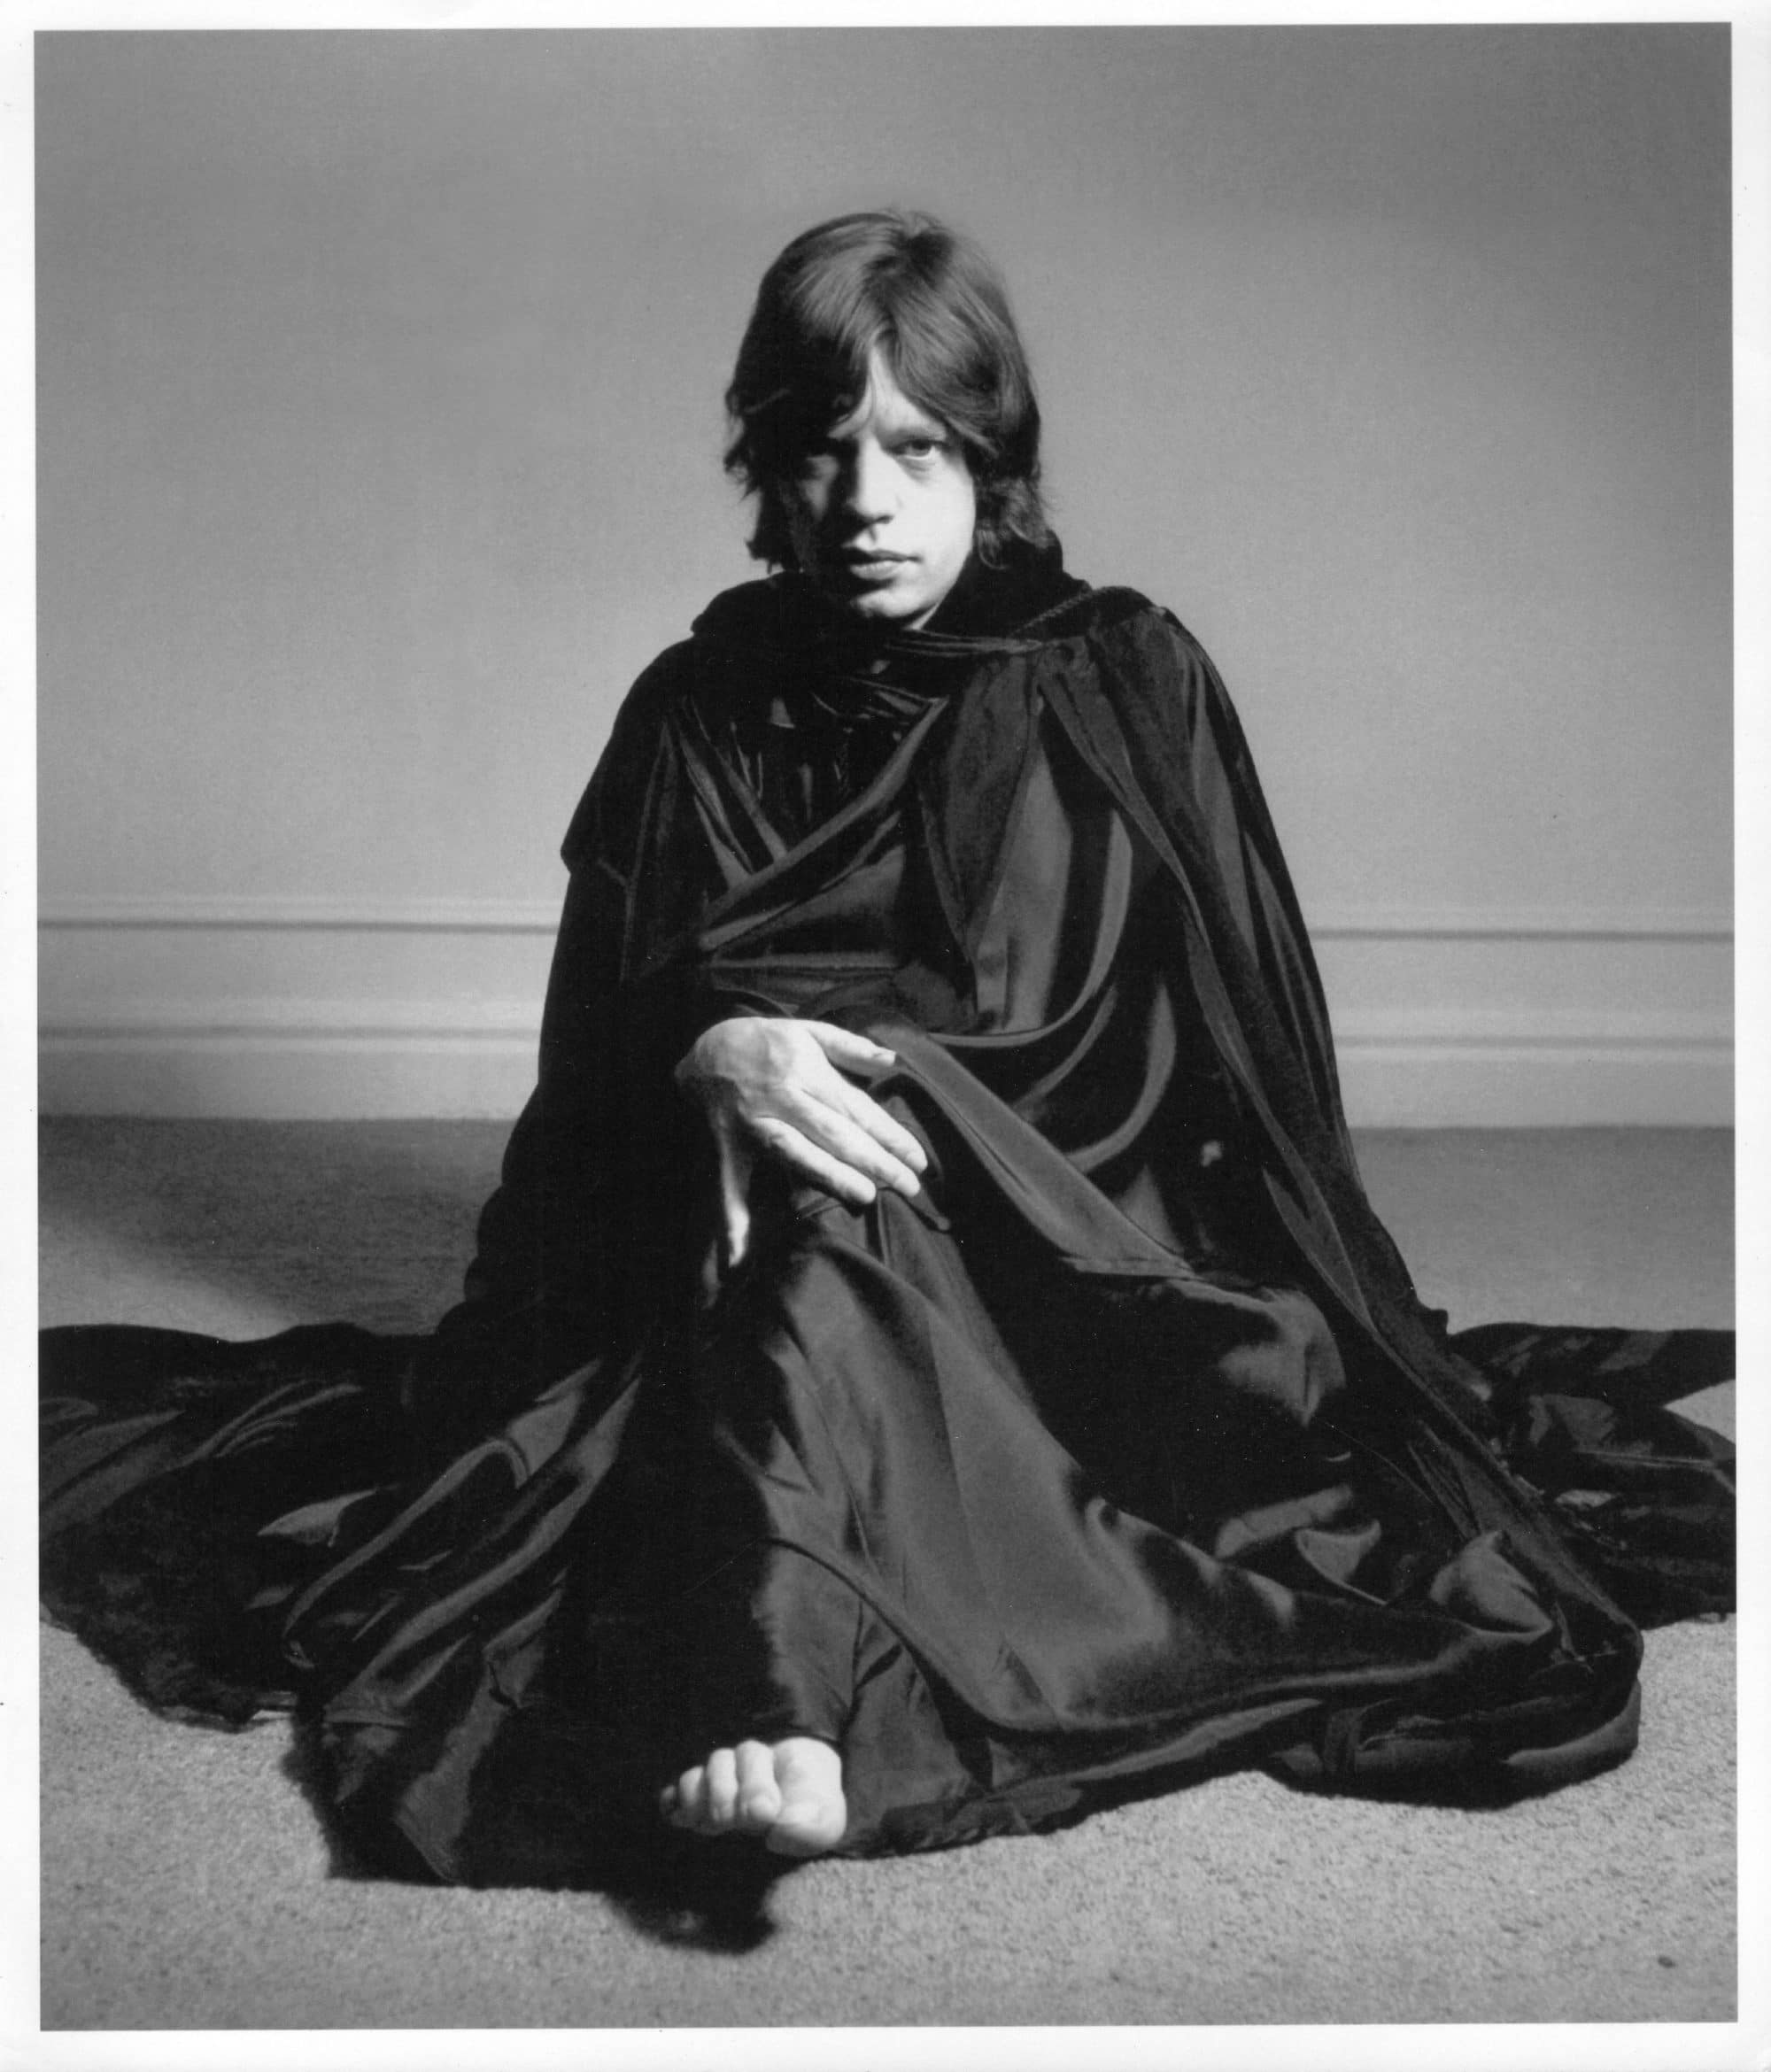 Mick Jagger Original 1969 Photograph By Cecil Beaton